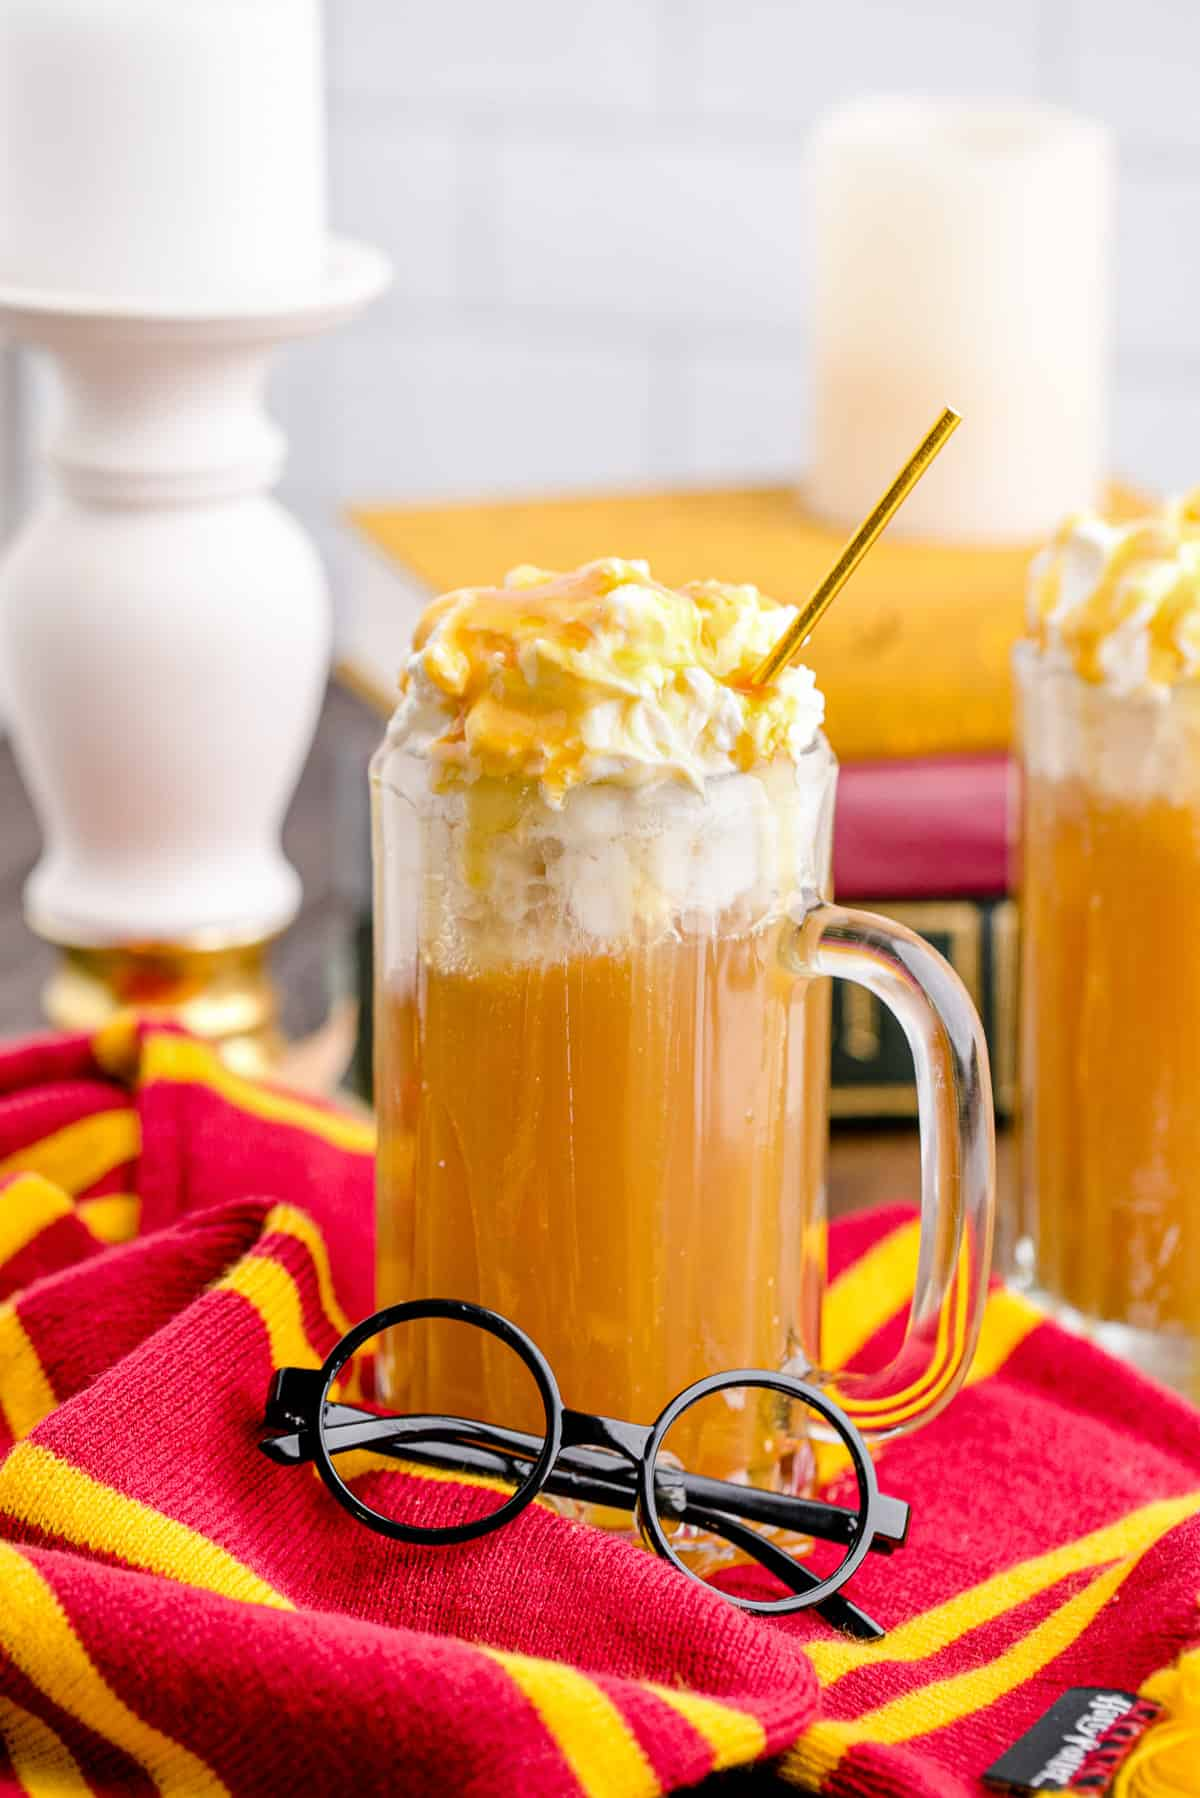 A tall mug of homemade copycat butterbeer with whipped cream and butterscotch syrup on top.